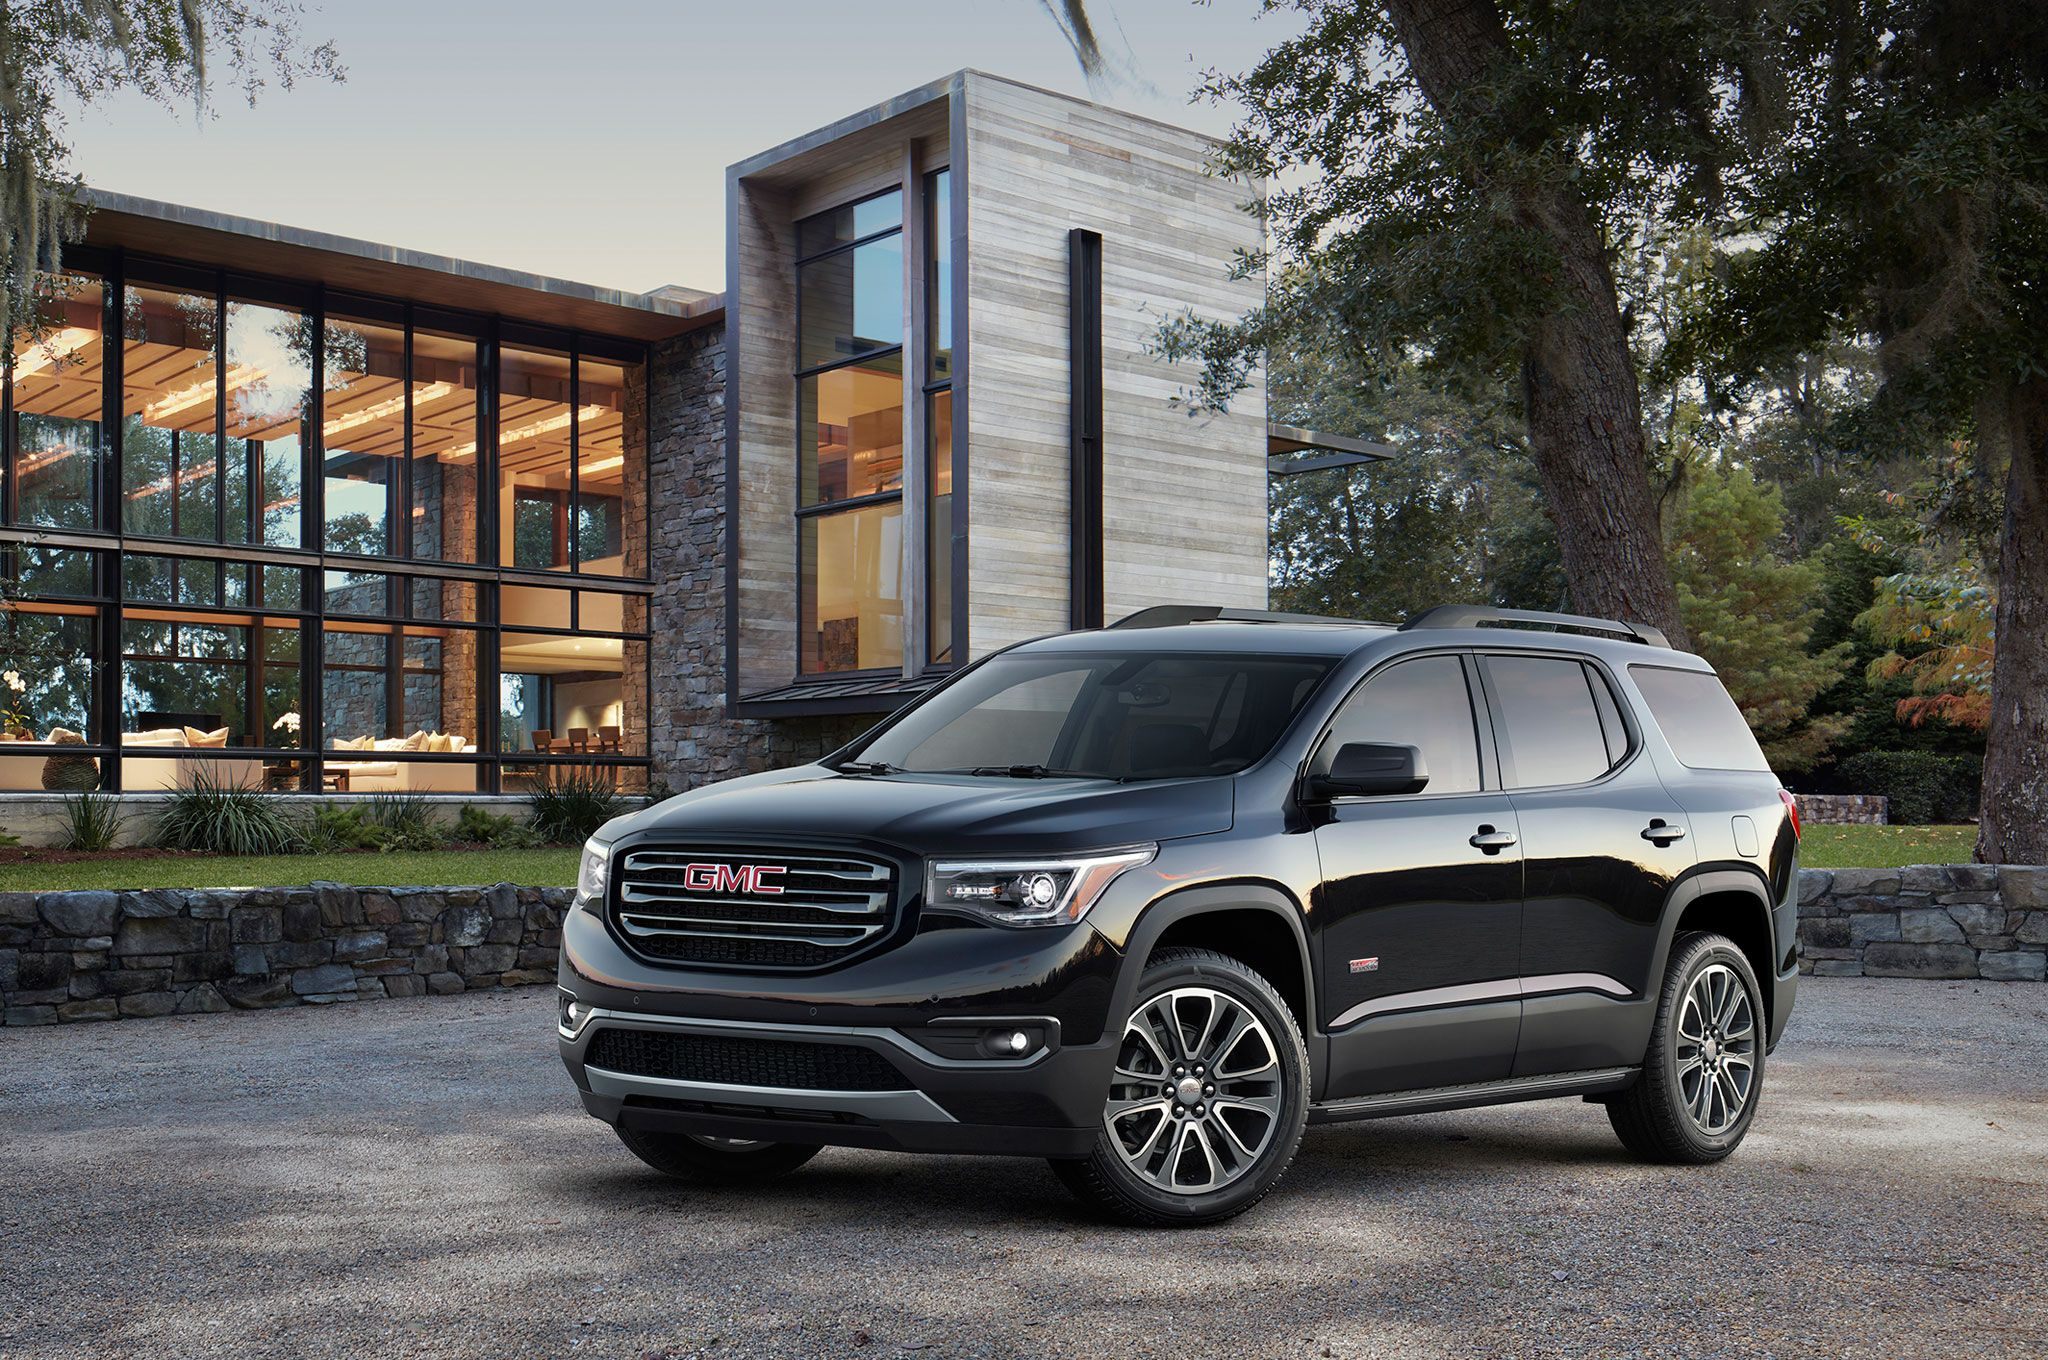 Gm S President Of North America Said That Sales To Daily Rental Fleets Would Fall By About 50 000 Units This Year Seven Seater Suv Suv Gmc Acadia 2017